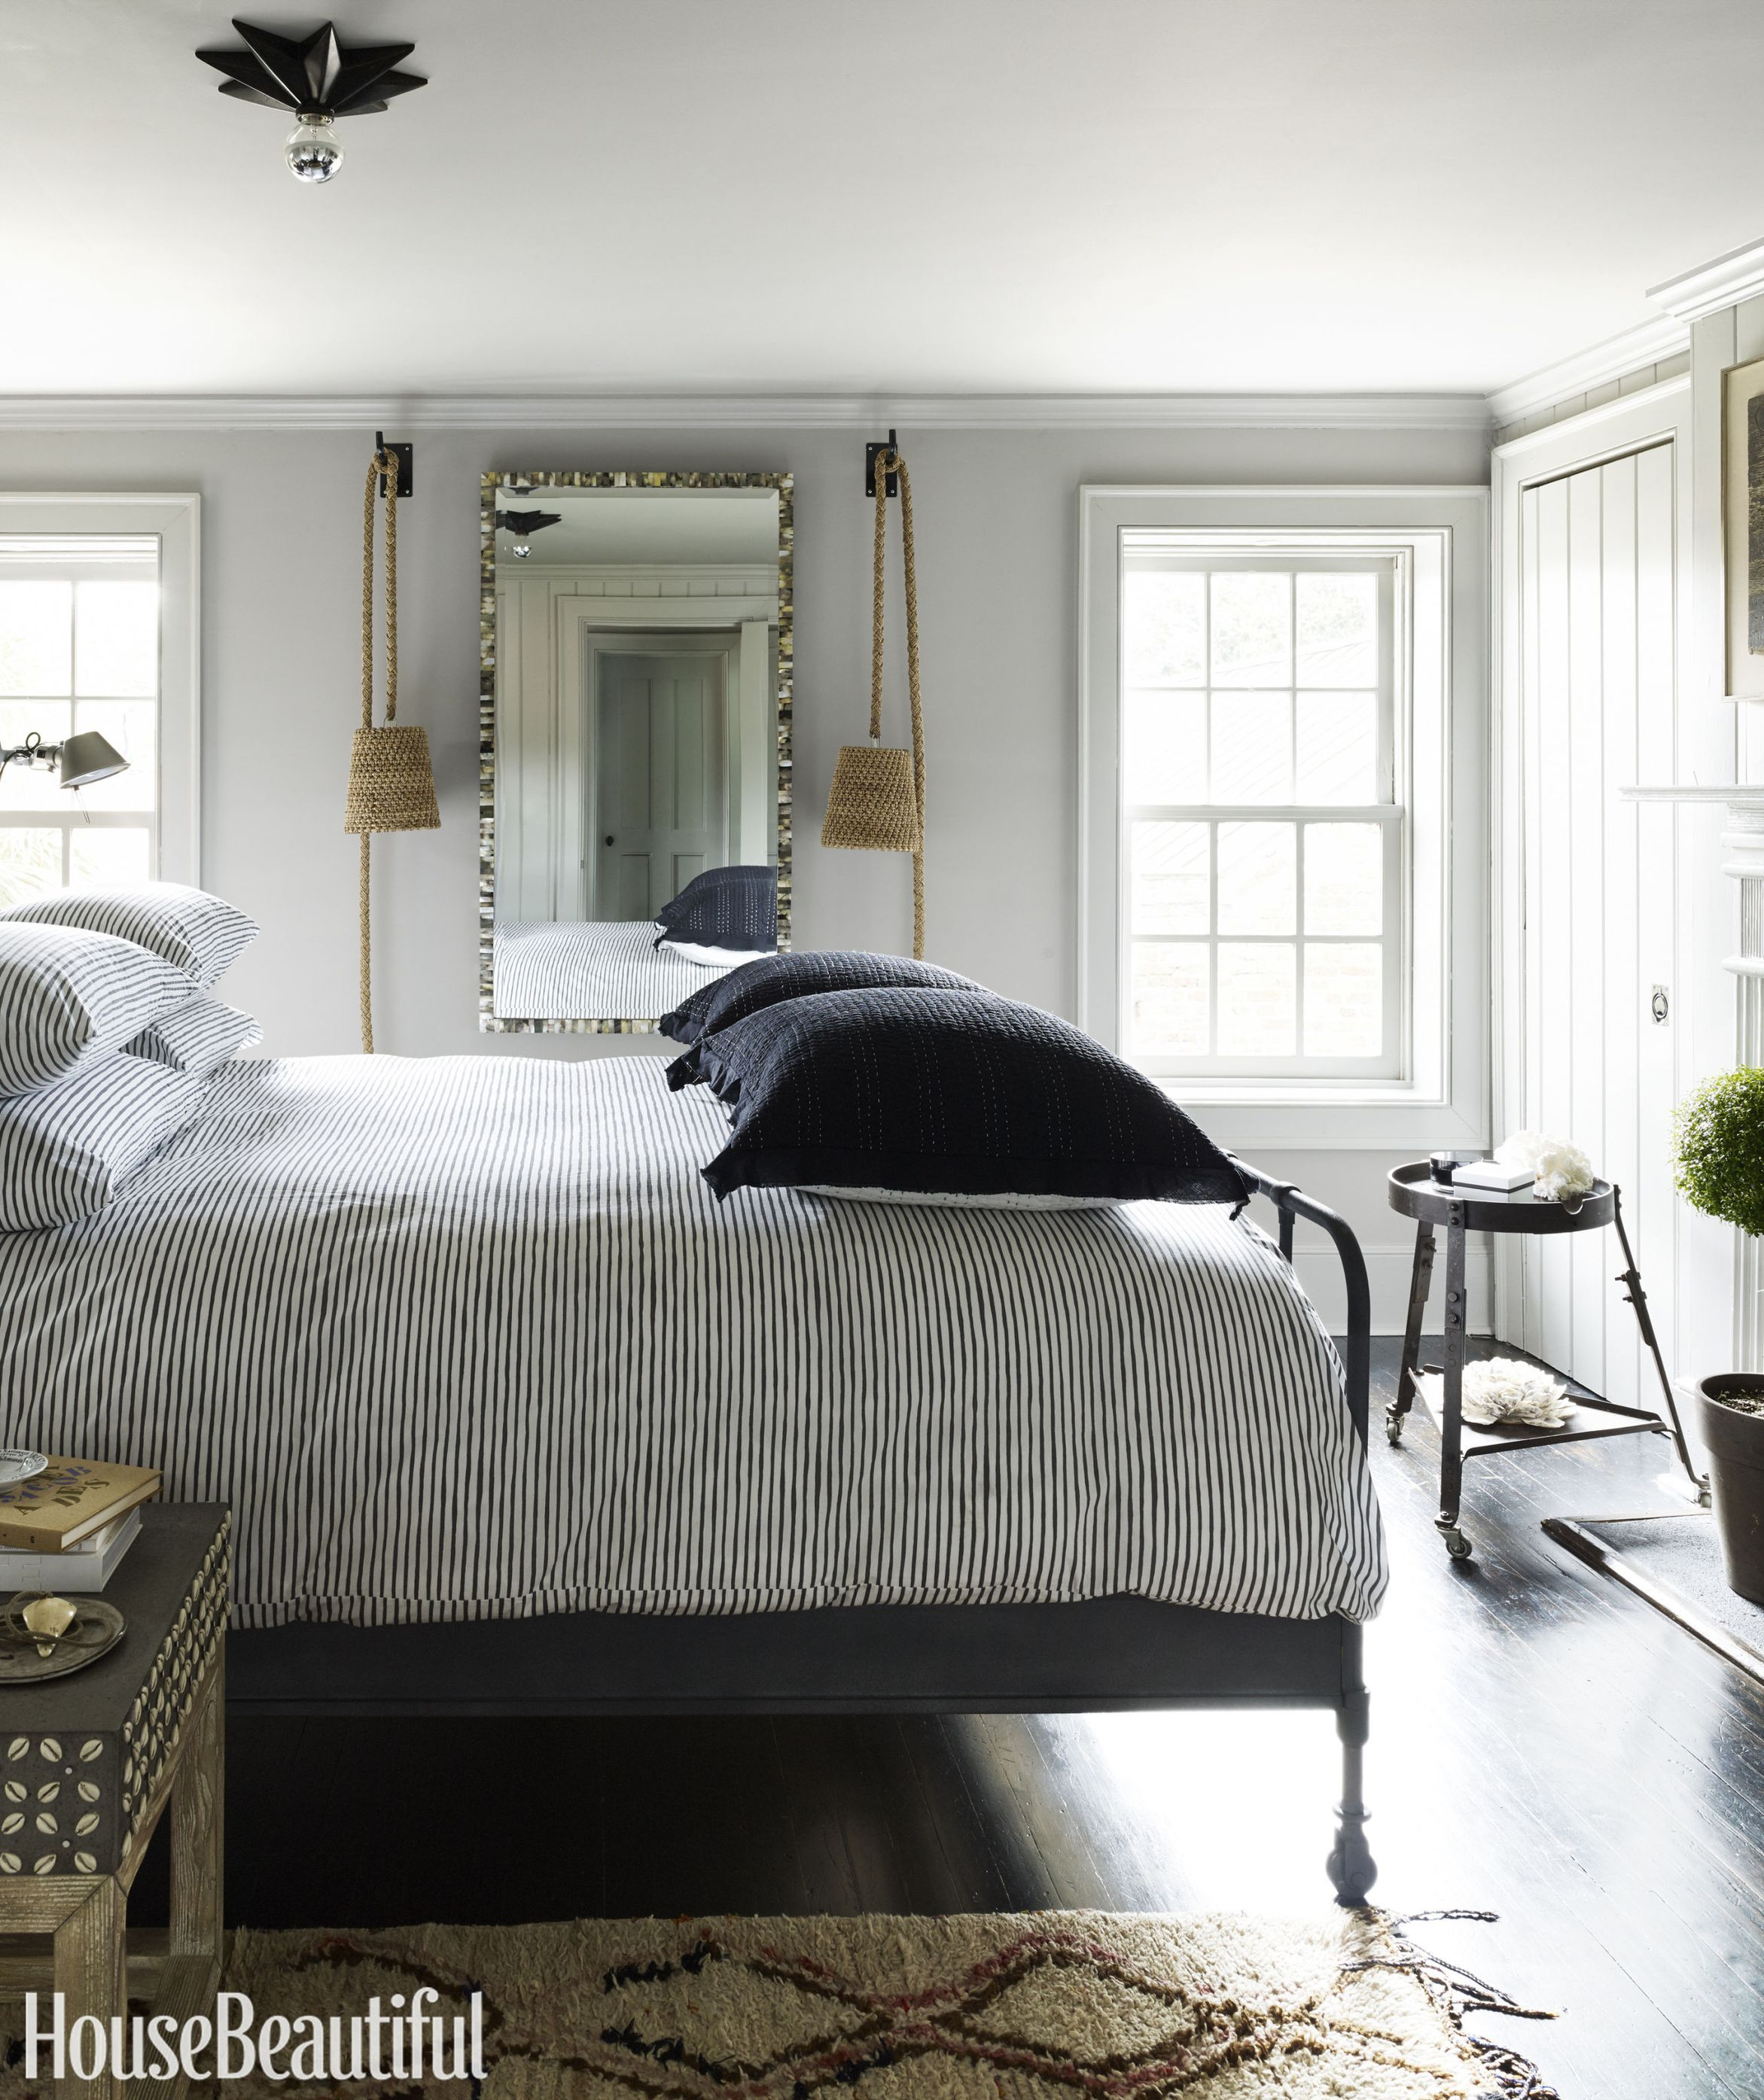 15 beautiful black and white bedroom ideas - black and white decor UGWCDFK